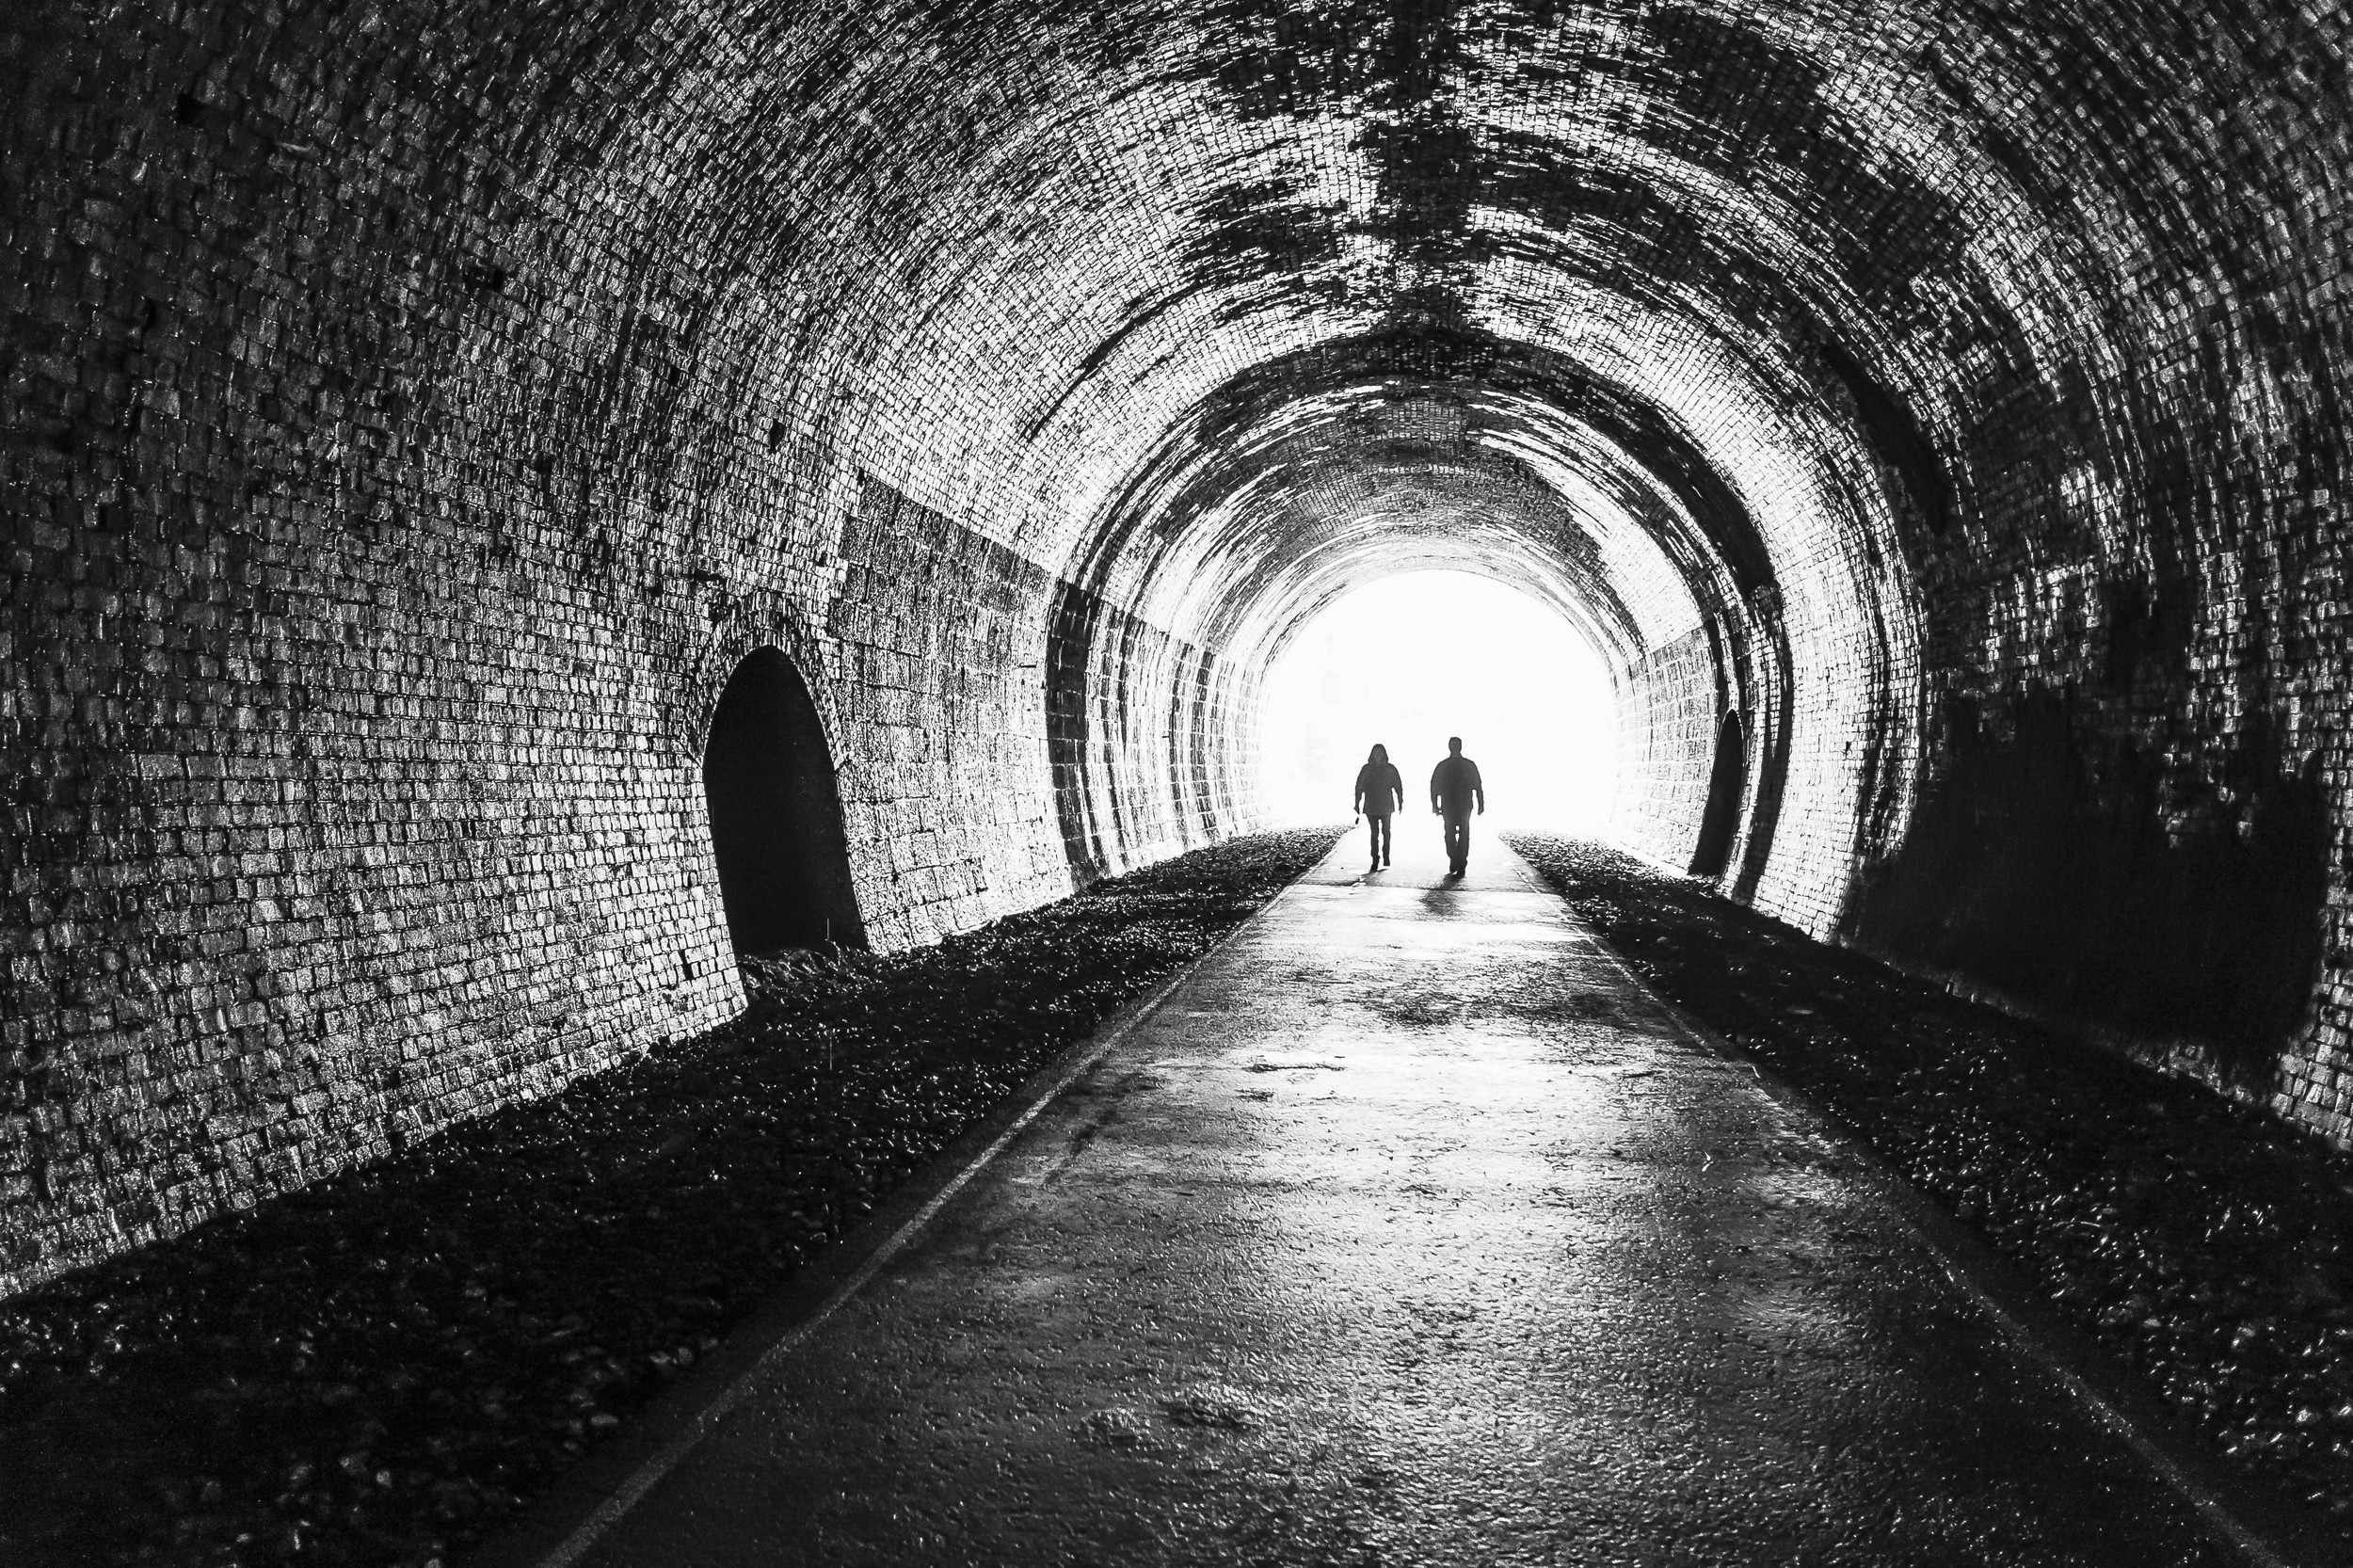 """Light at the End of the Tunnel"" - Monsal Trail, England. Fujifilm X-Pro1 + 18mm f/2 @ f/2. 1/50."